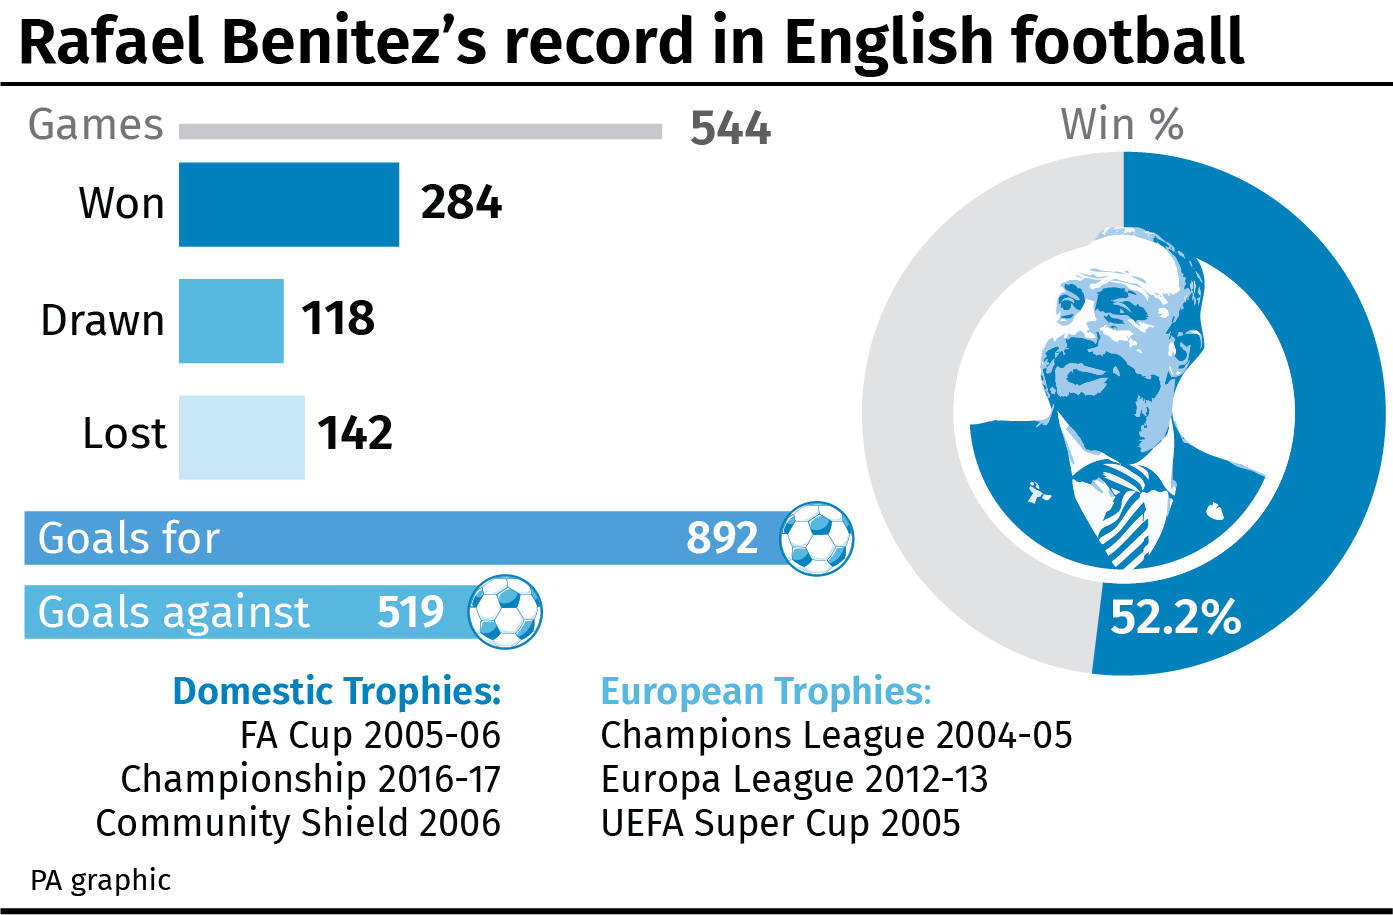 Rafael Benitez's record in English football